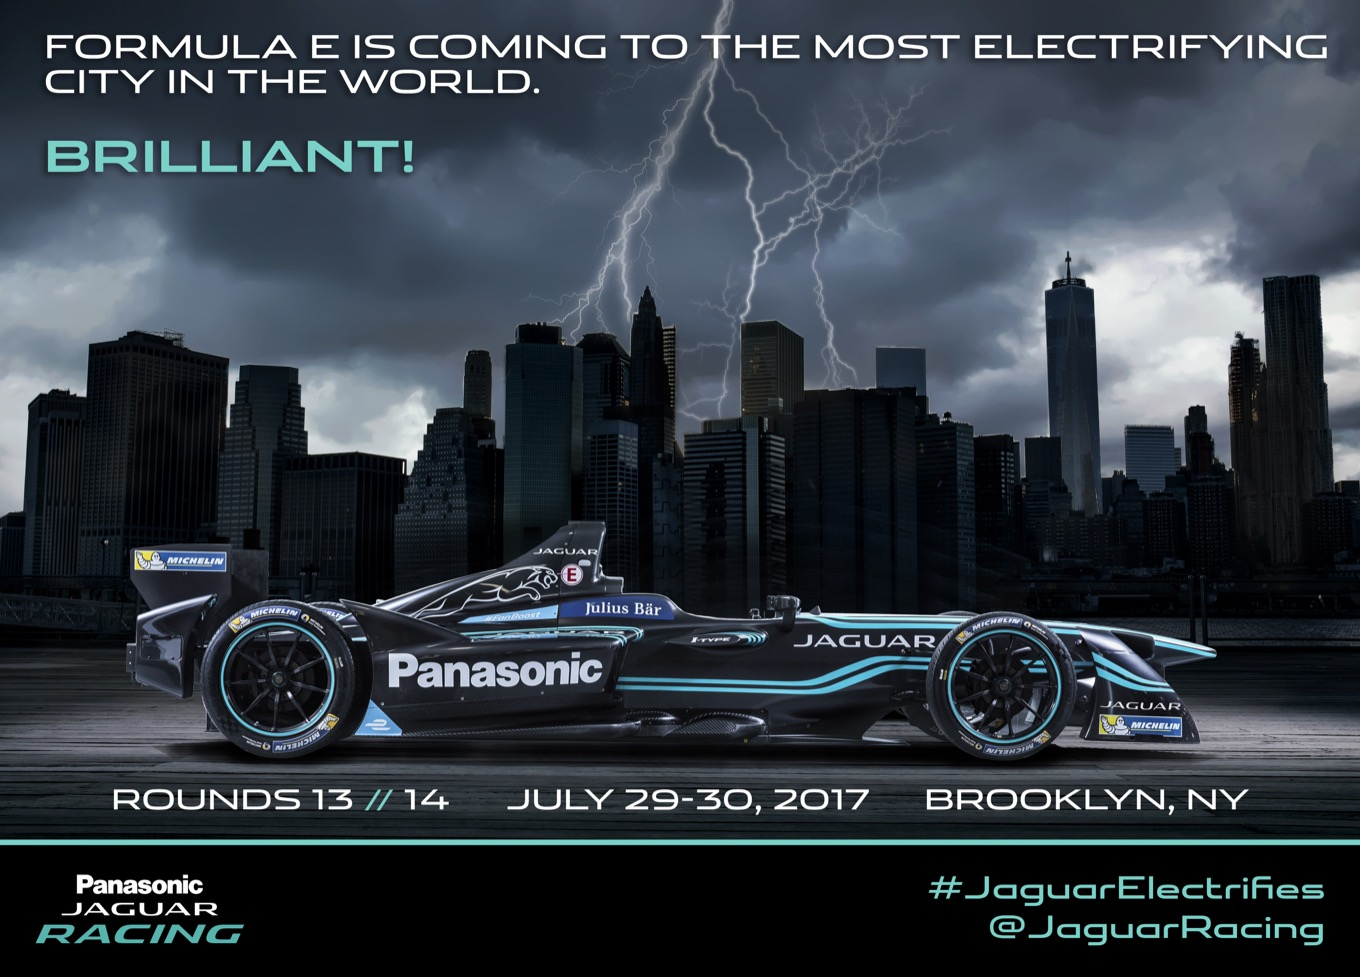 Jaguar Formula-E to New York